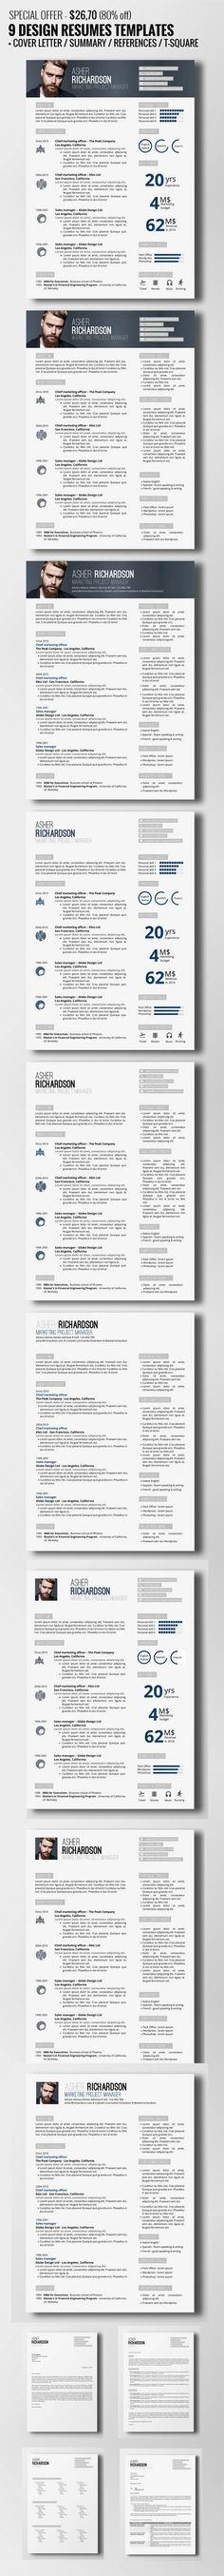 435 best Resume images on Pinterest Resume design, Design resume - brand officer sample resume